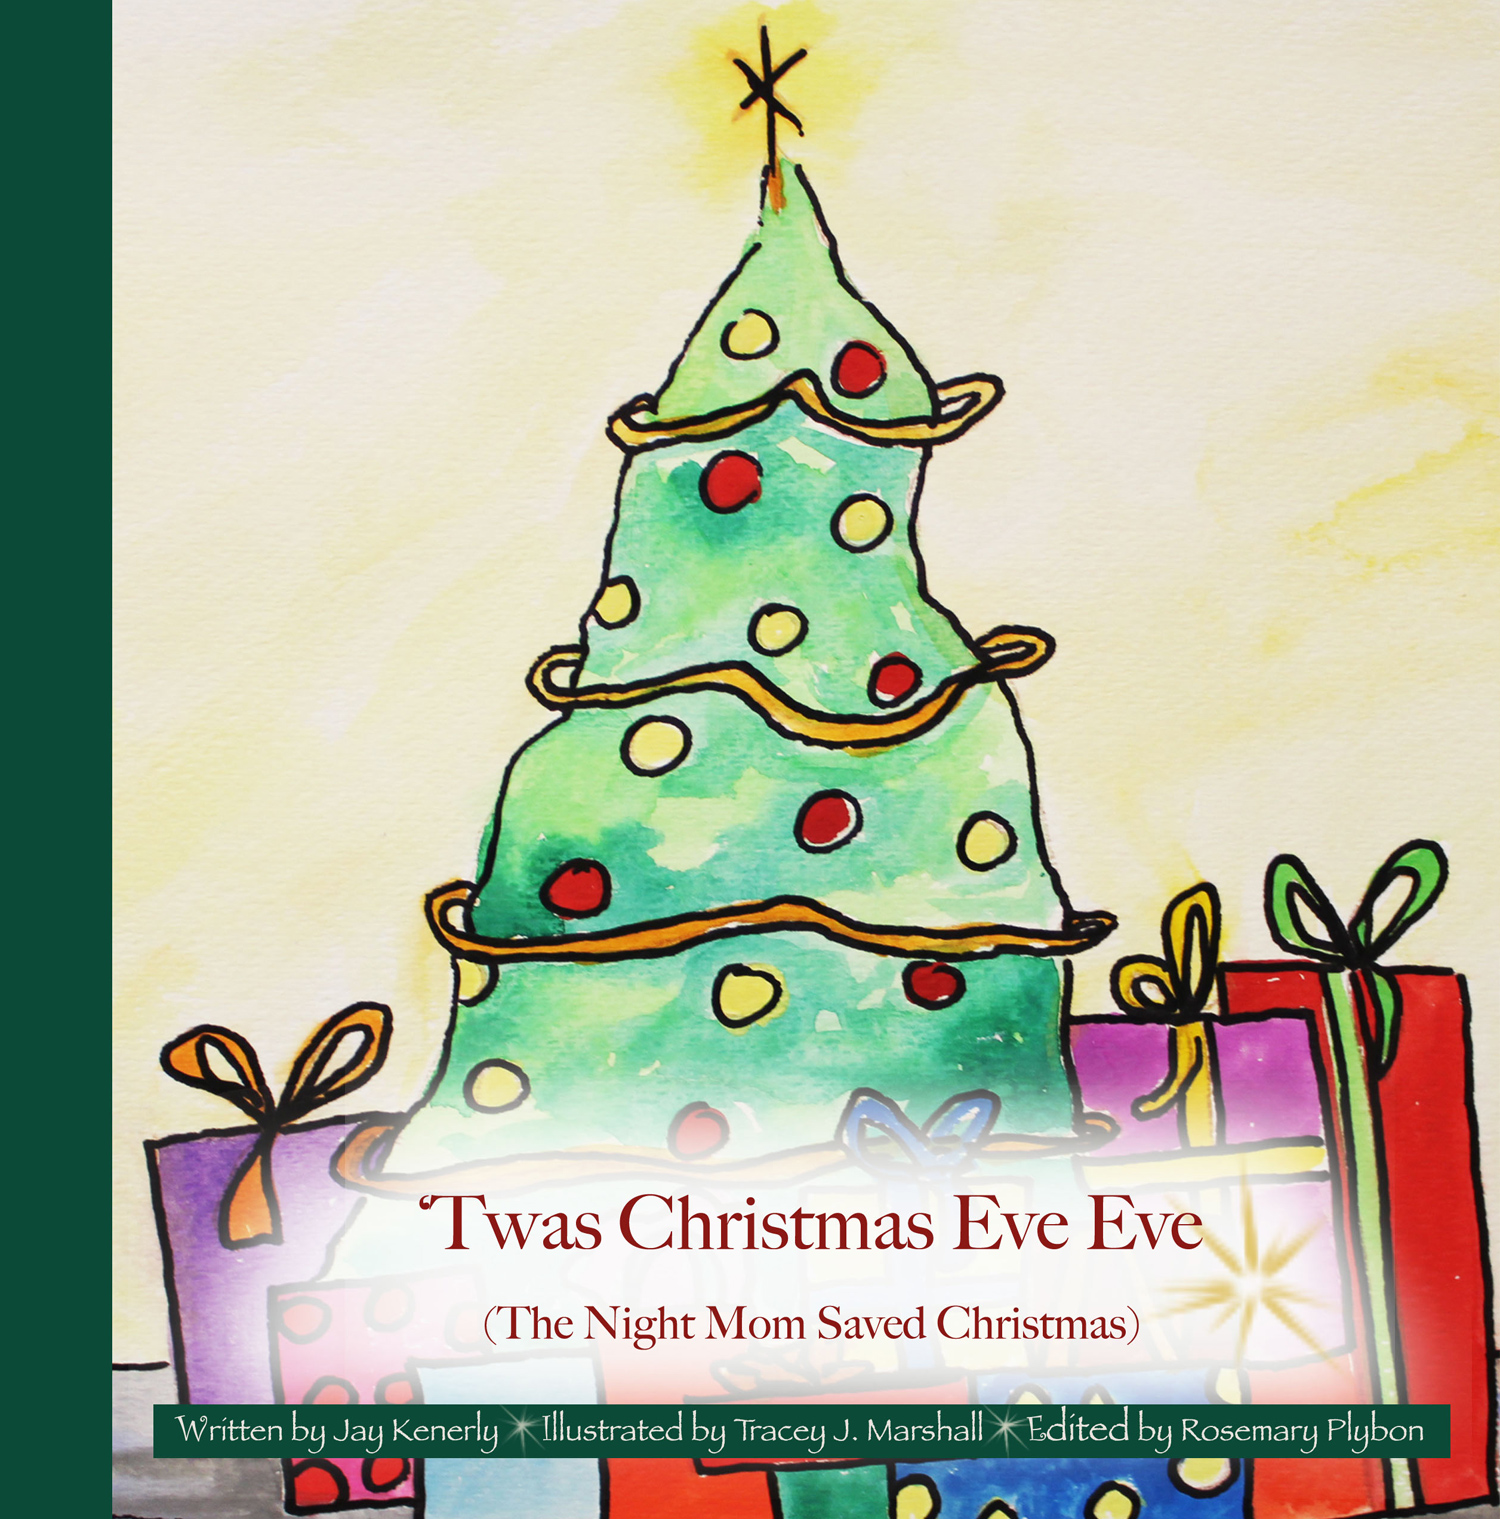 Visit and like the   'Twas Christmas Eve Eve   Facebook page!